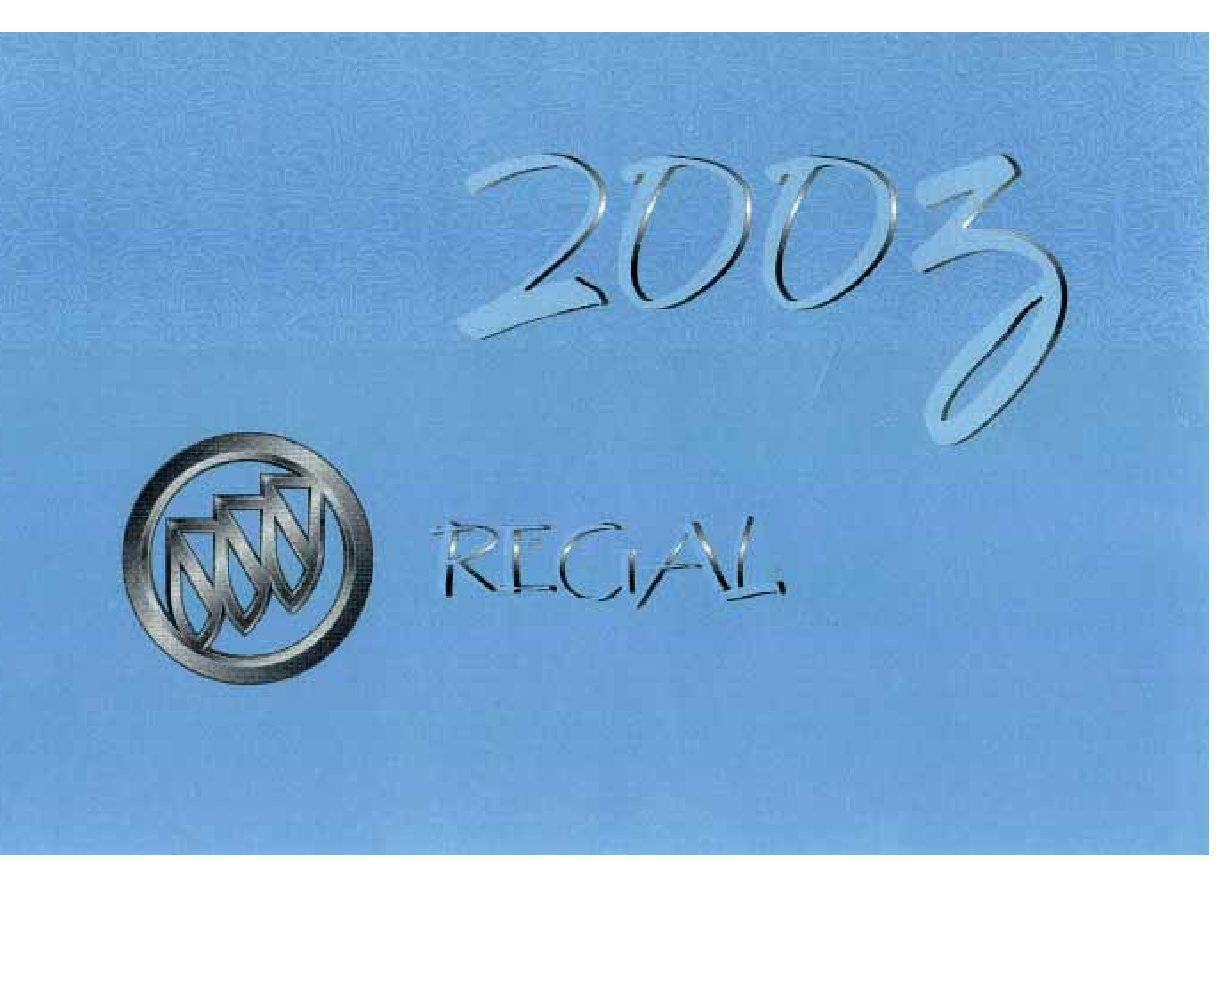 2003 buick regal owners manual just give me the damn manual rh justgivemethedamnmanual com 2003 buick regal owner's manual pdf 2000 buick regal owners manual pdf